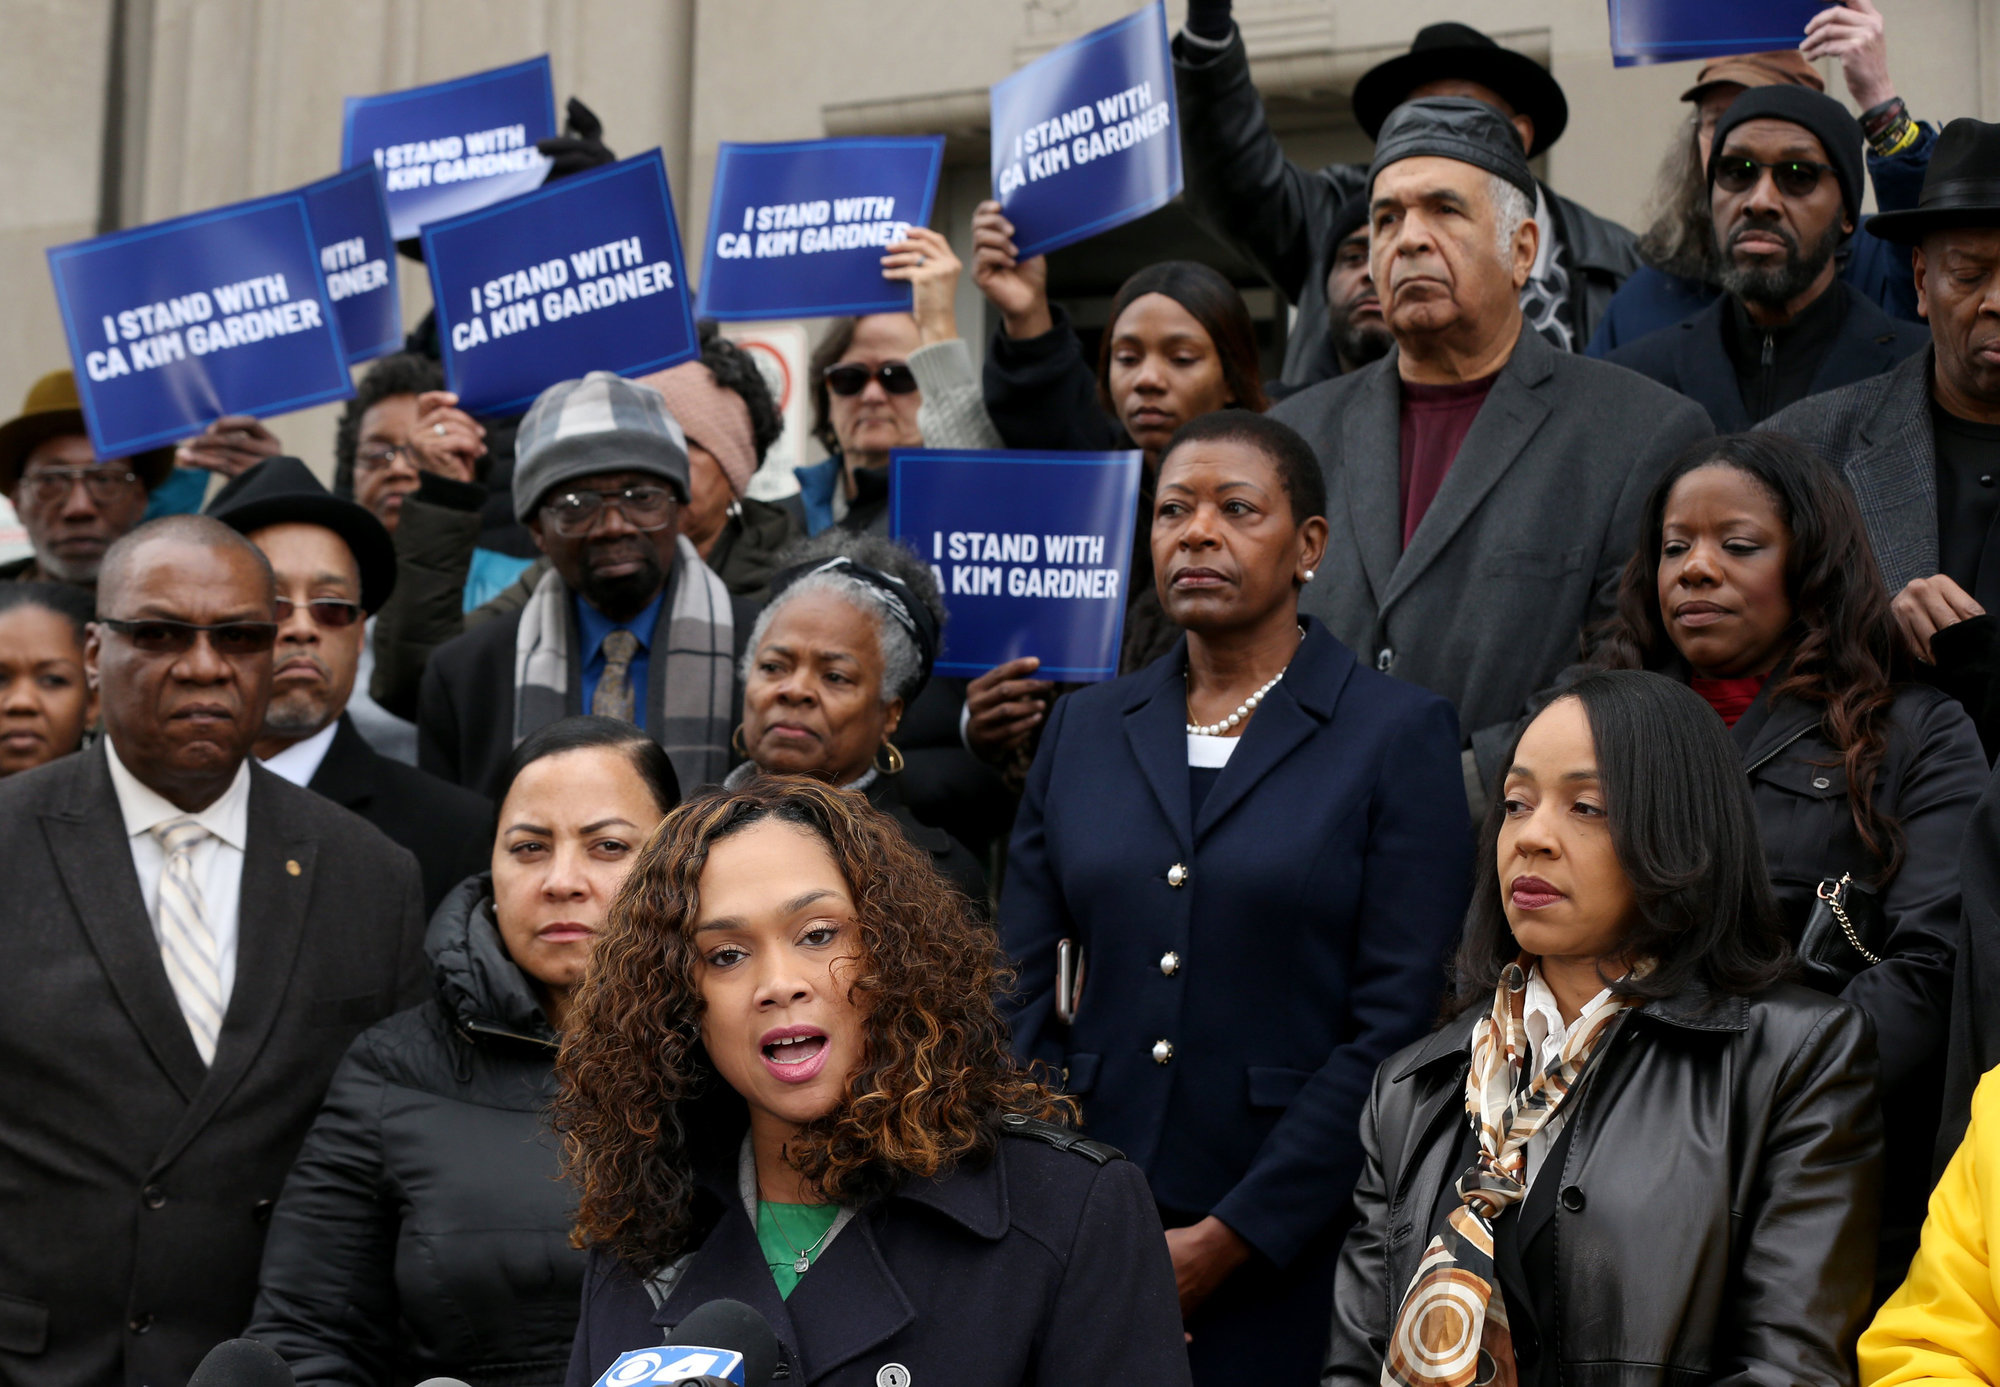 Baltimore State's Attorney Marilyn Mosby, center, speaks at a rally in St. Louis in support of Circuit Attorney Kimberly M. Gardner's lawsuit against her city's leadership.